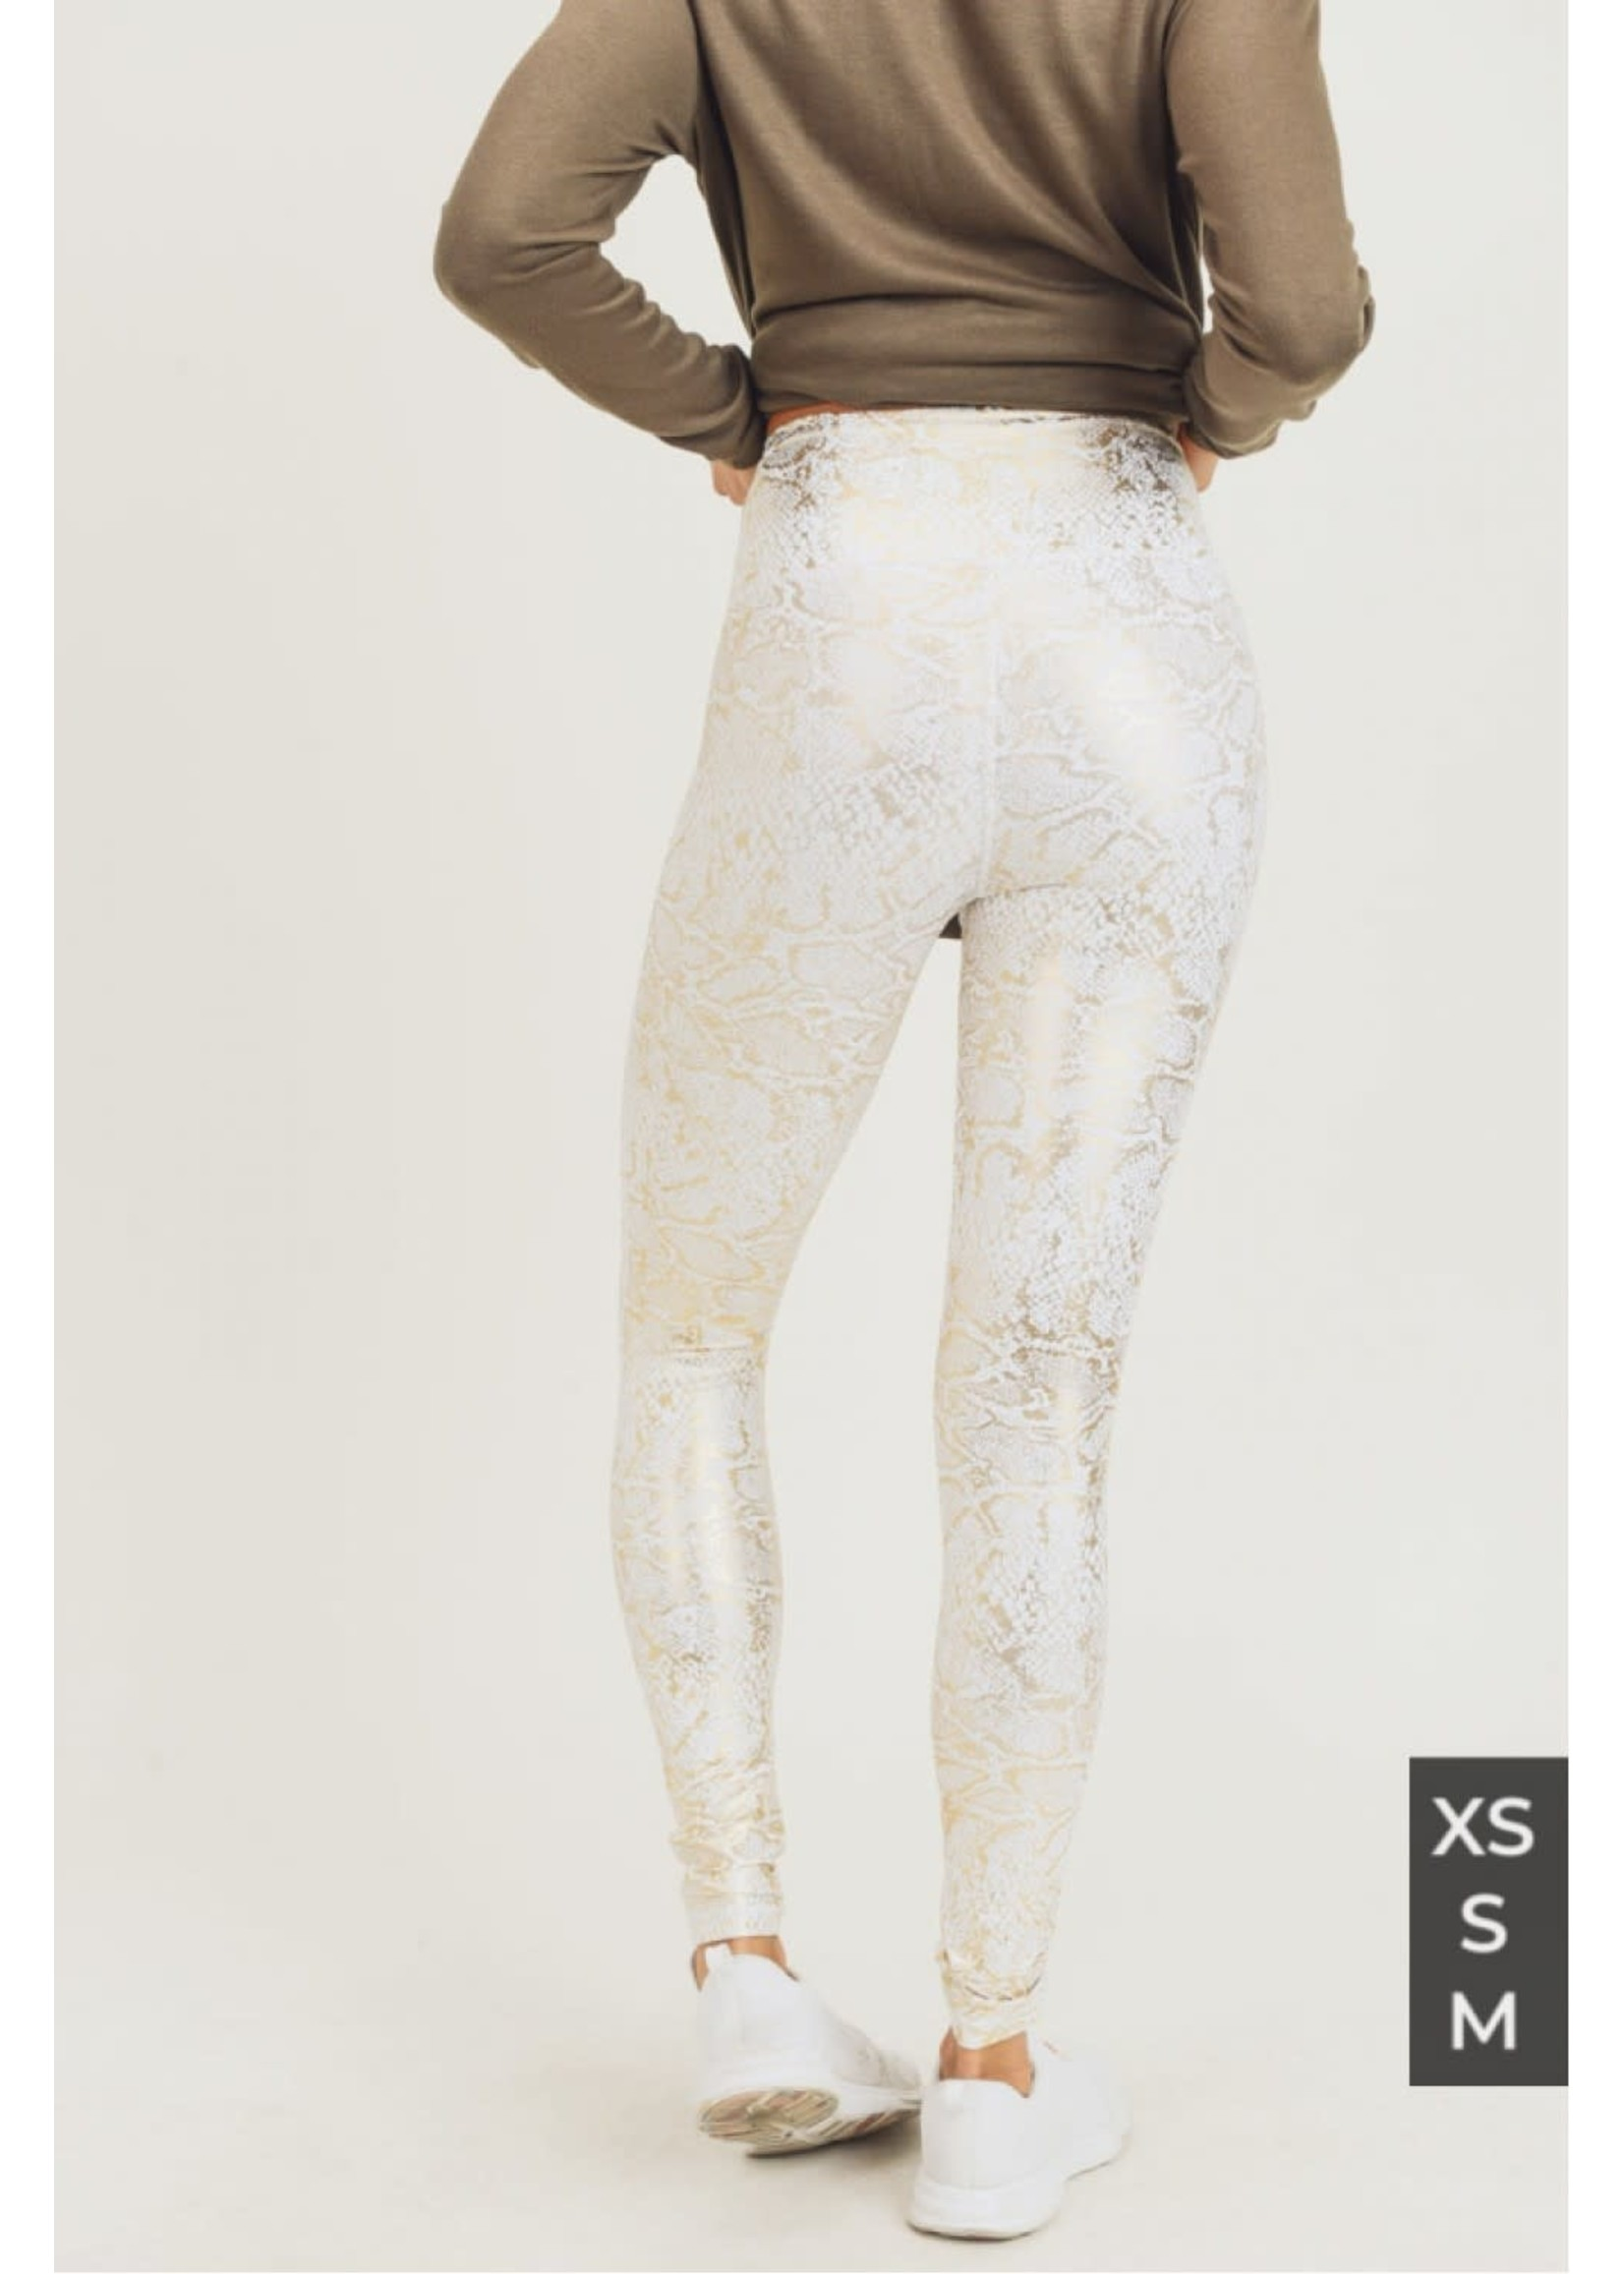 Mono B Gold and White Snakeskin Highwaist Leggings